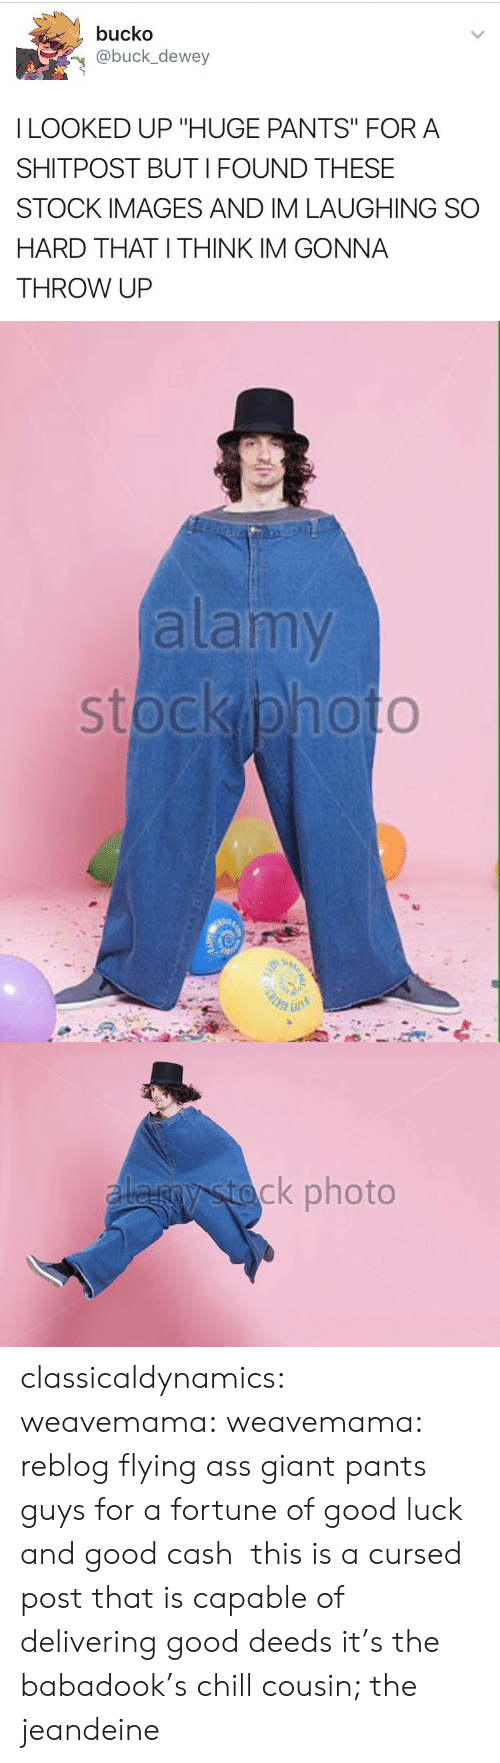 "Bucko: bucko  @buck_dewey  I LOOKED UP ""HUGE PANTS"" FORA  SHITPOST BUTI FOUND THESE  STOCK IMAGES AND IM LAUGHING SO  HARD THAT I THINK IM GONNA  THROW UP   alamy   ck photo classicaldynamics: weavemama:  weavemama:  reblog flying ass giant pants guys for a fortune of good luck and good cash   this is a cursed post that is capable of delivering good deeds  it's the babadook's chill cousin; the jeandeine"